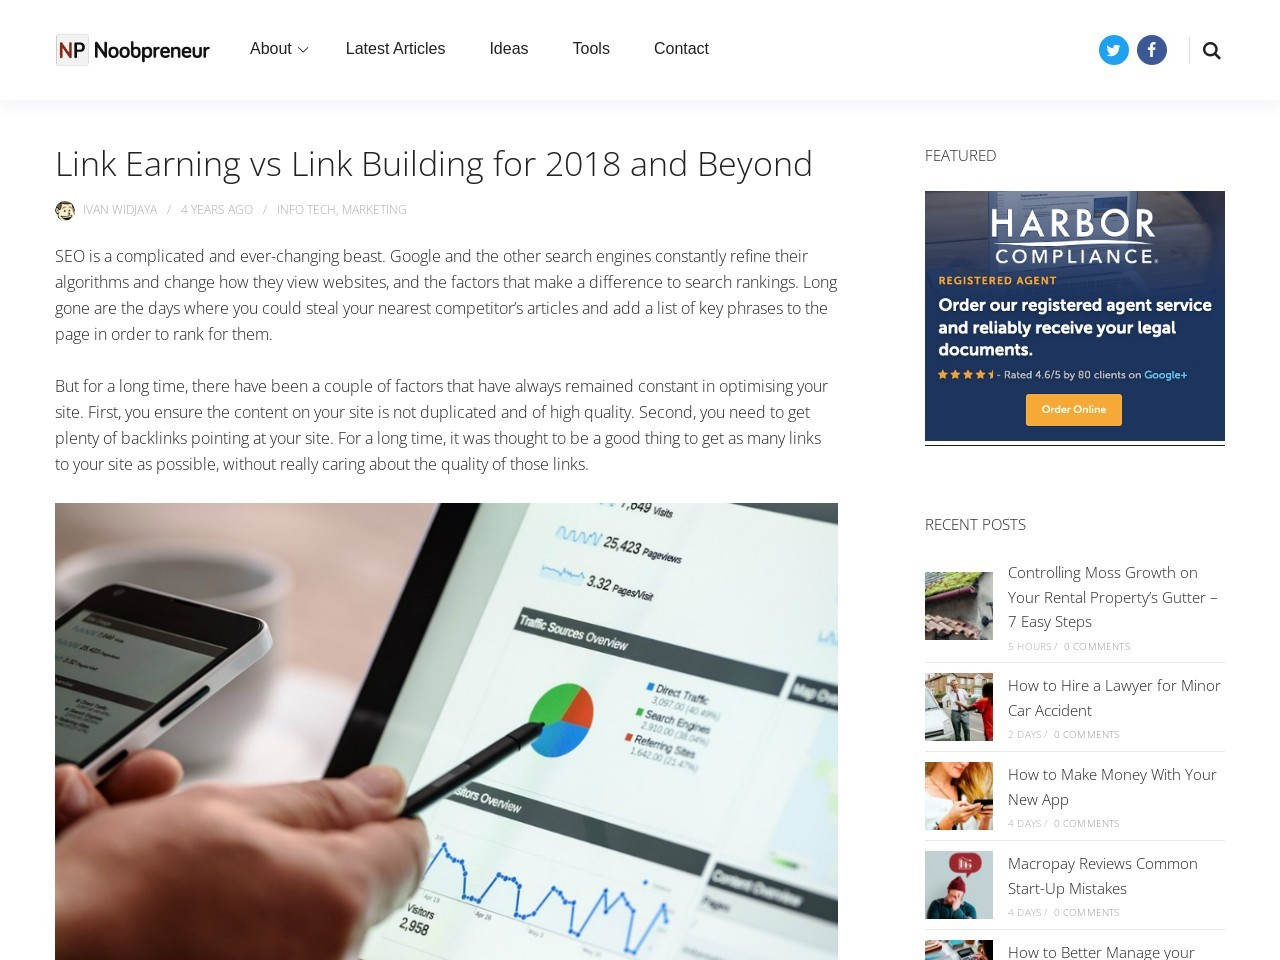 Link Earning vs Link Building for 2018 and Beyond